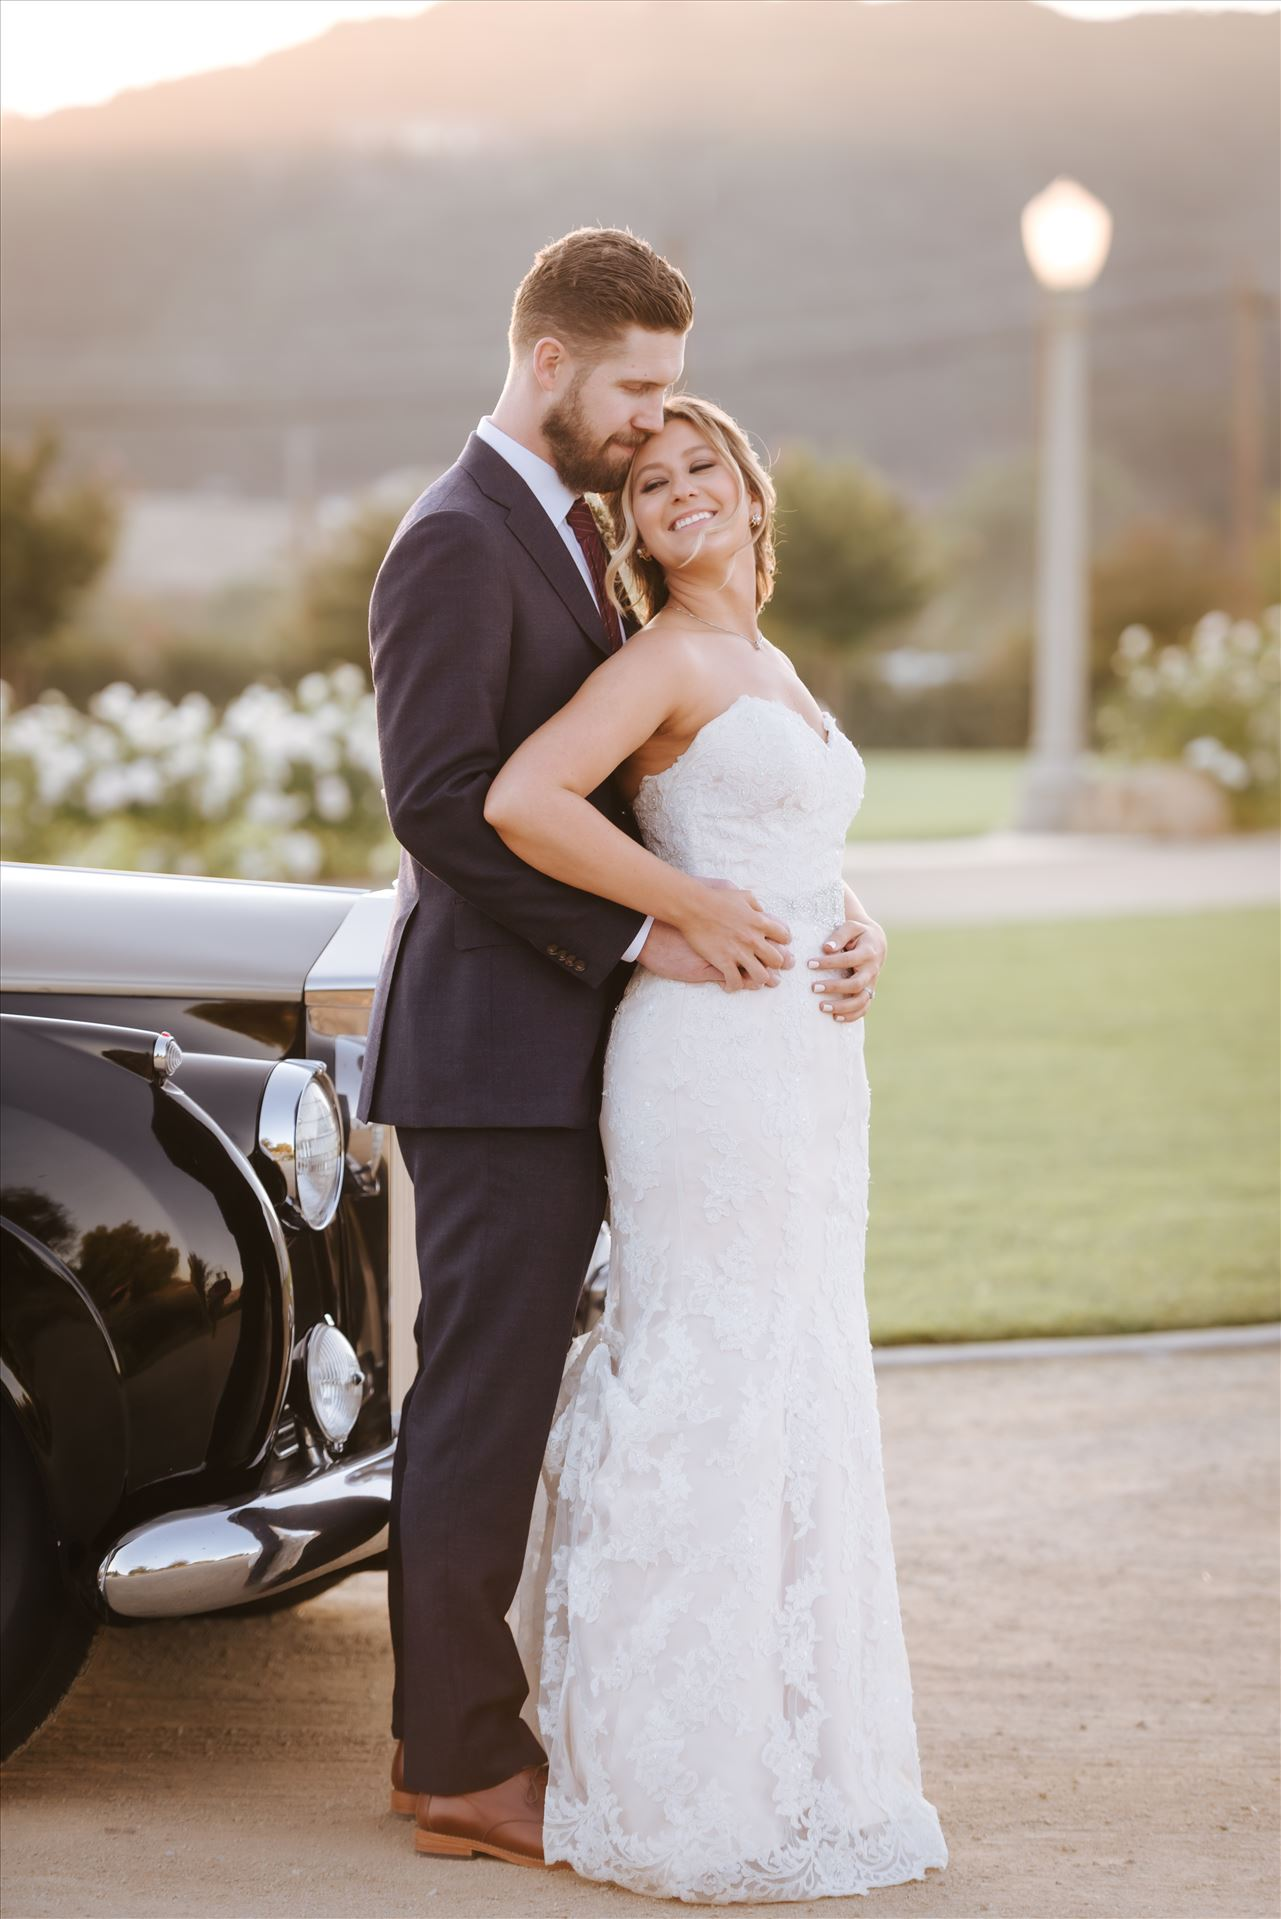 Port-7541.JPGWhite Barn in Edna Valley rustic chic wedding by Mirror's Edge Photography, San Luis Obispo County Wedding and Engagement Photographer.  Sunset elegance with Rolls Royce and Bride and Groom in front of the White Barn in Edna Valley California.